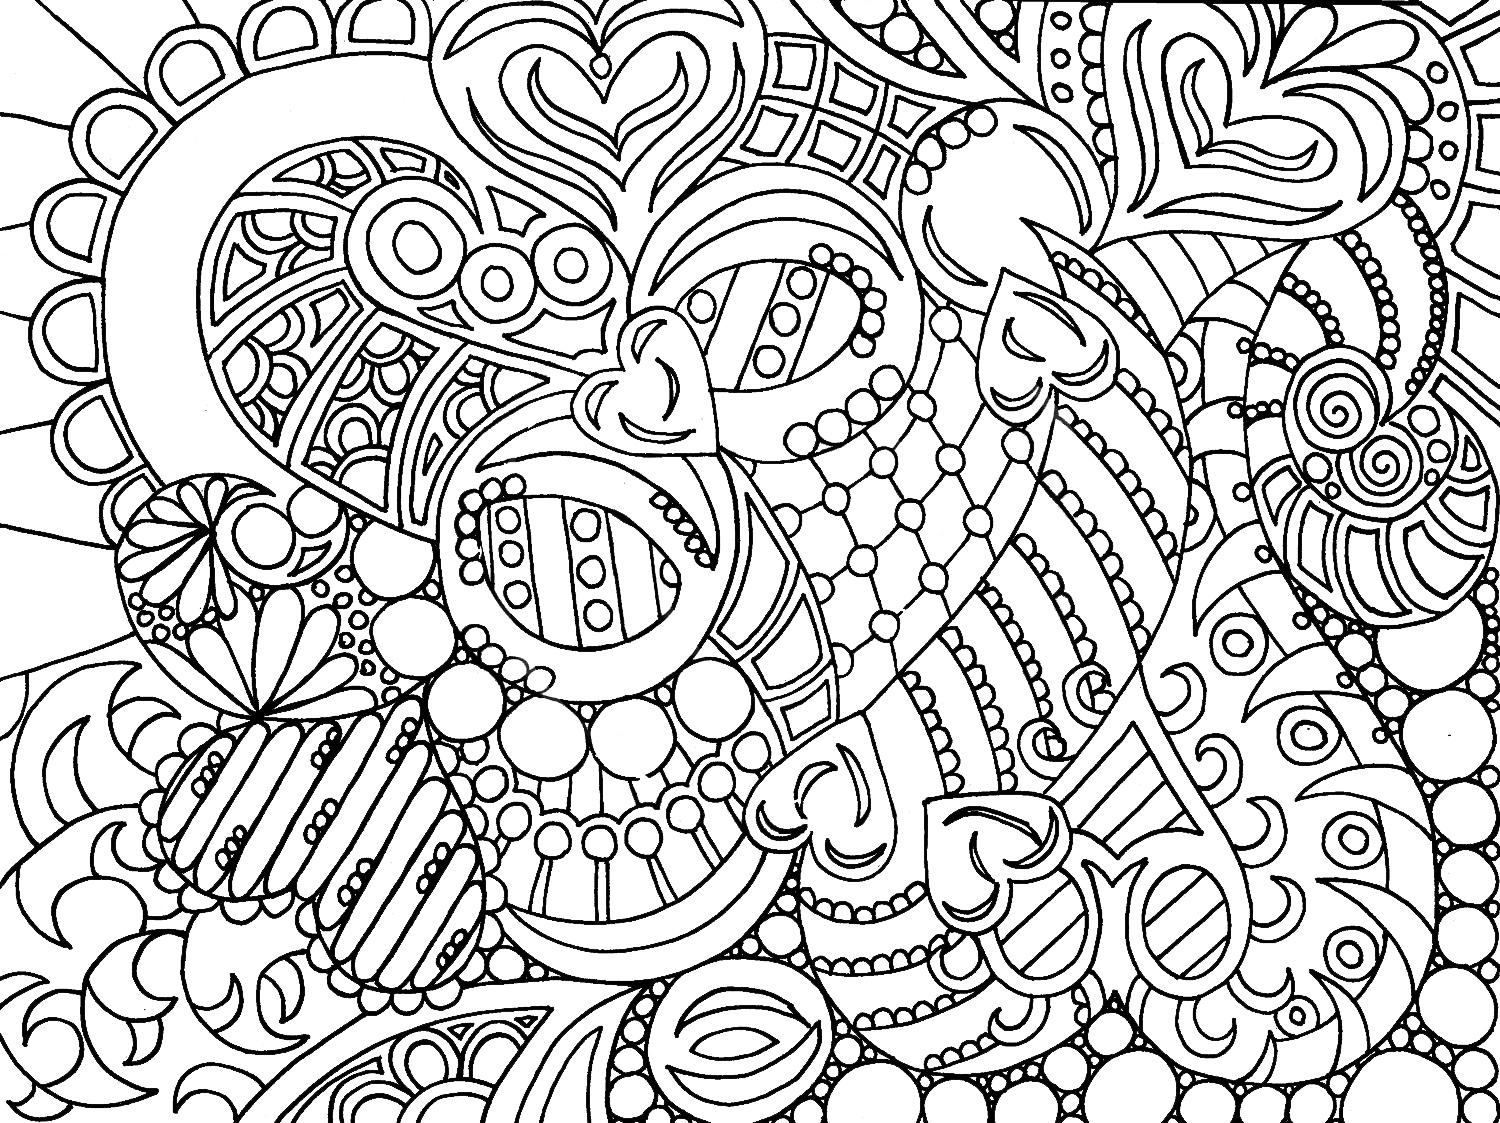 Stress coloring books - Stress Coloring Books 25